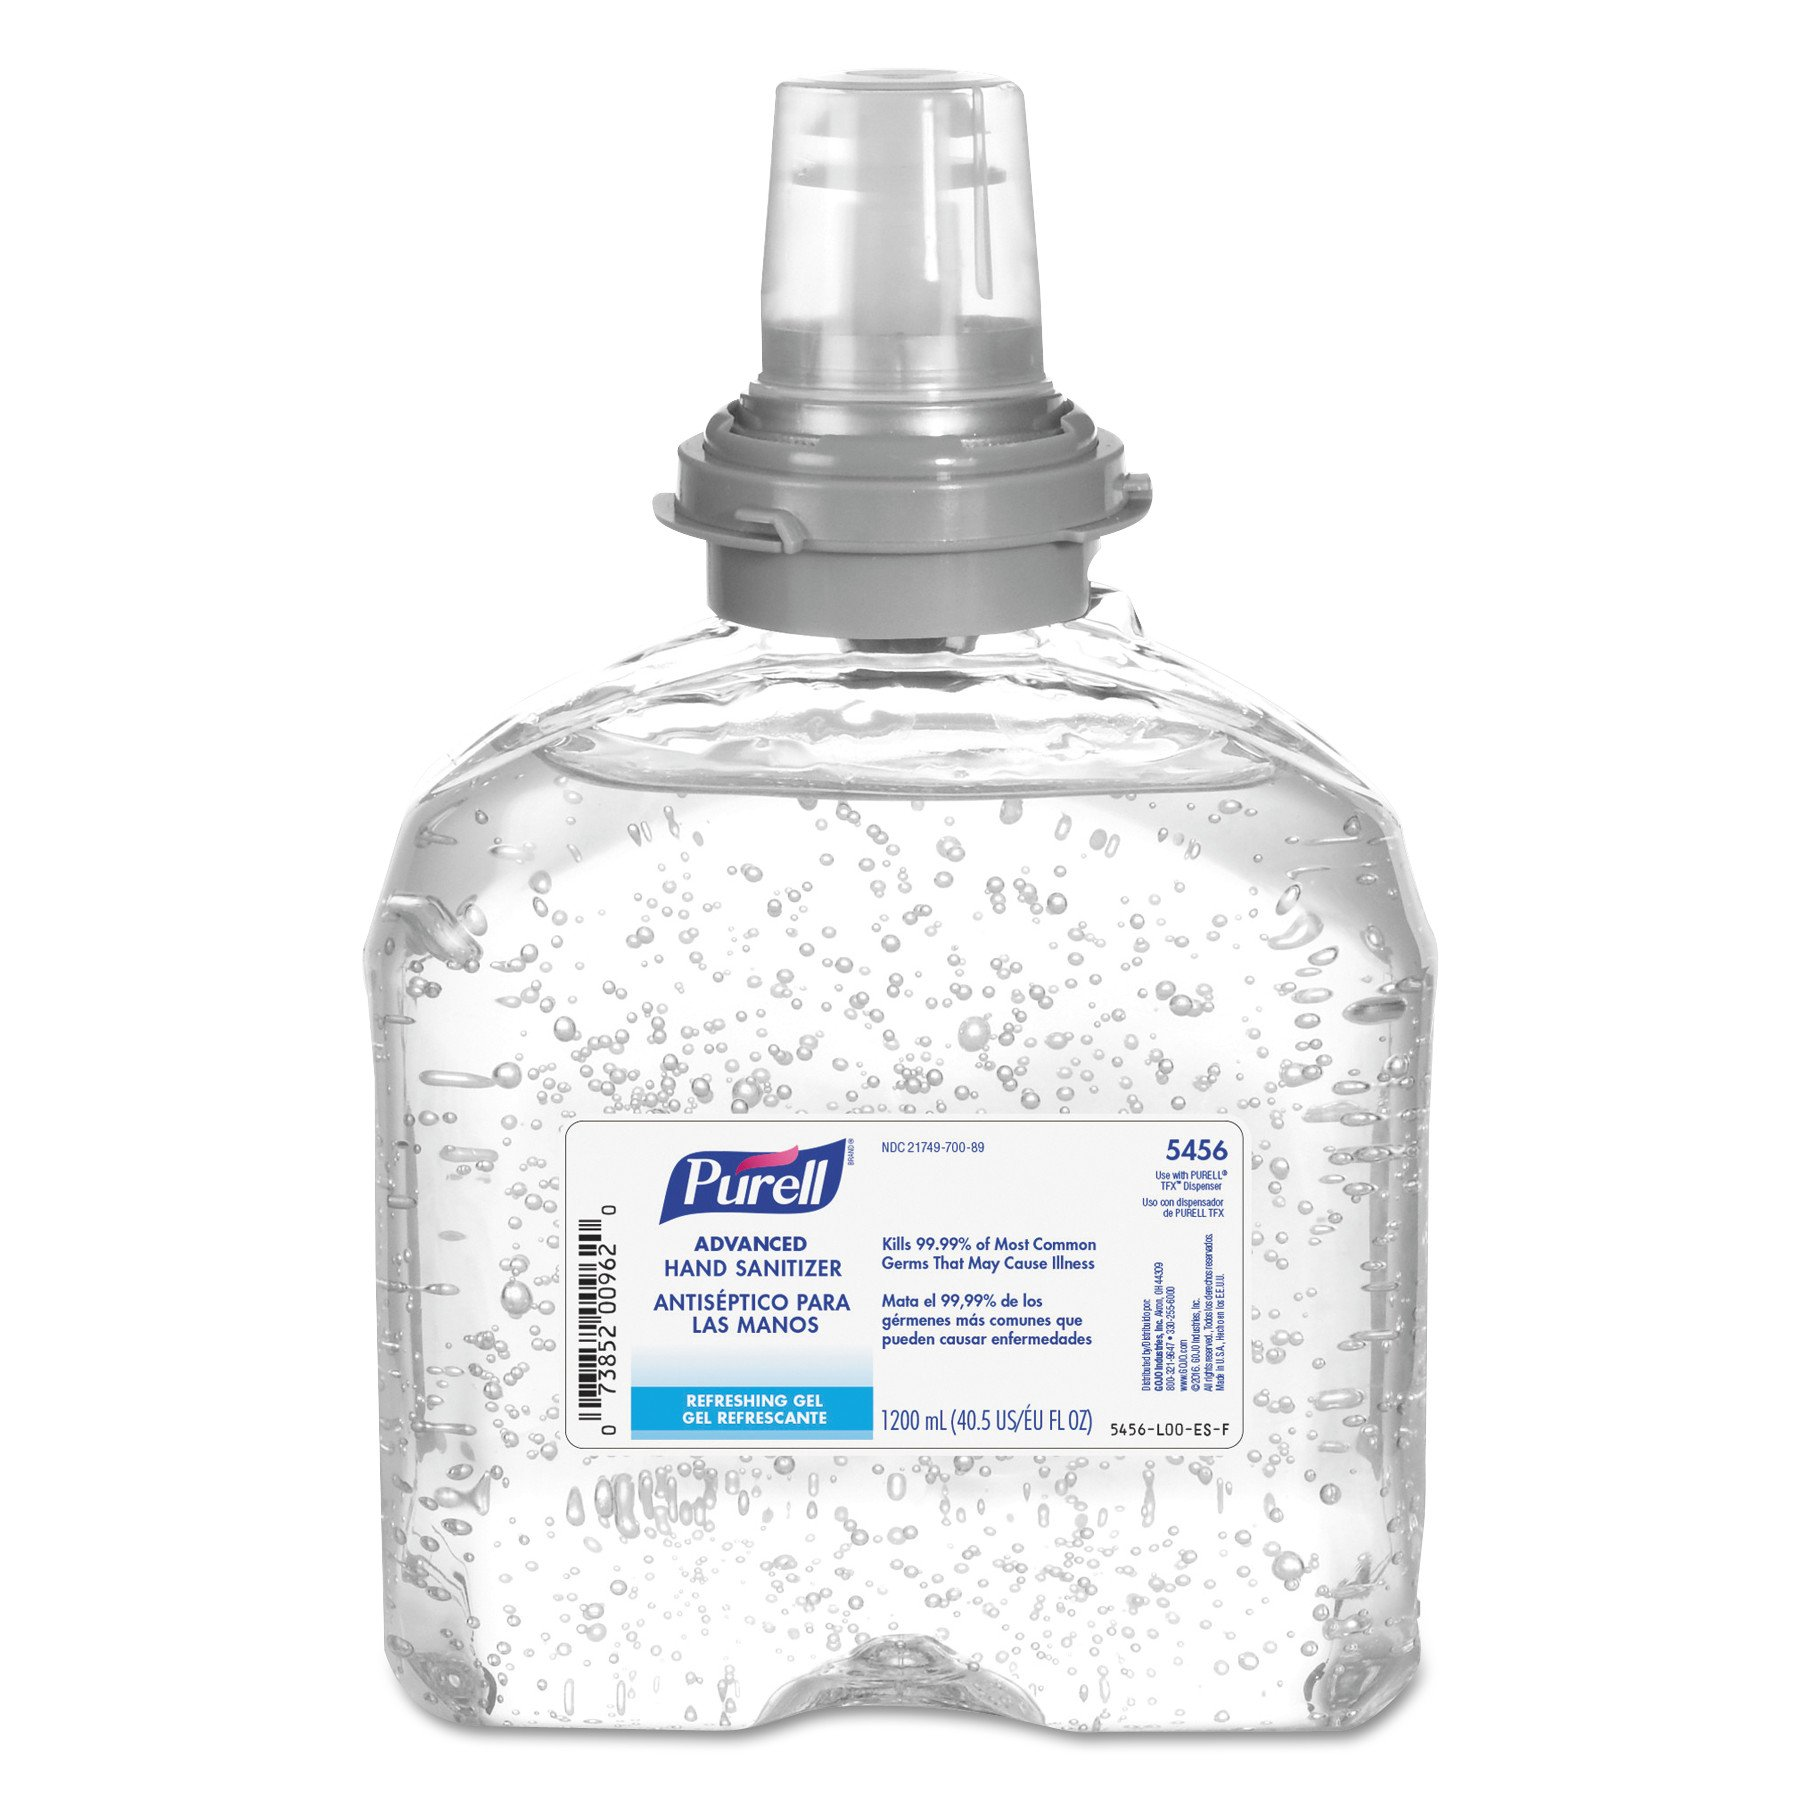 Purell TFX Refill, 5456-04 - Advanced Gel Hand Sanitizer (1200 mL)